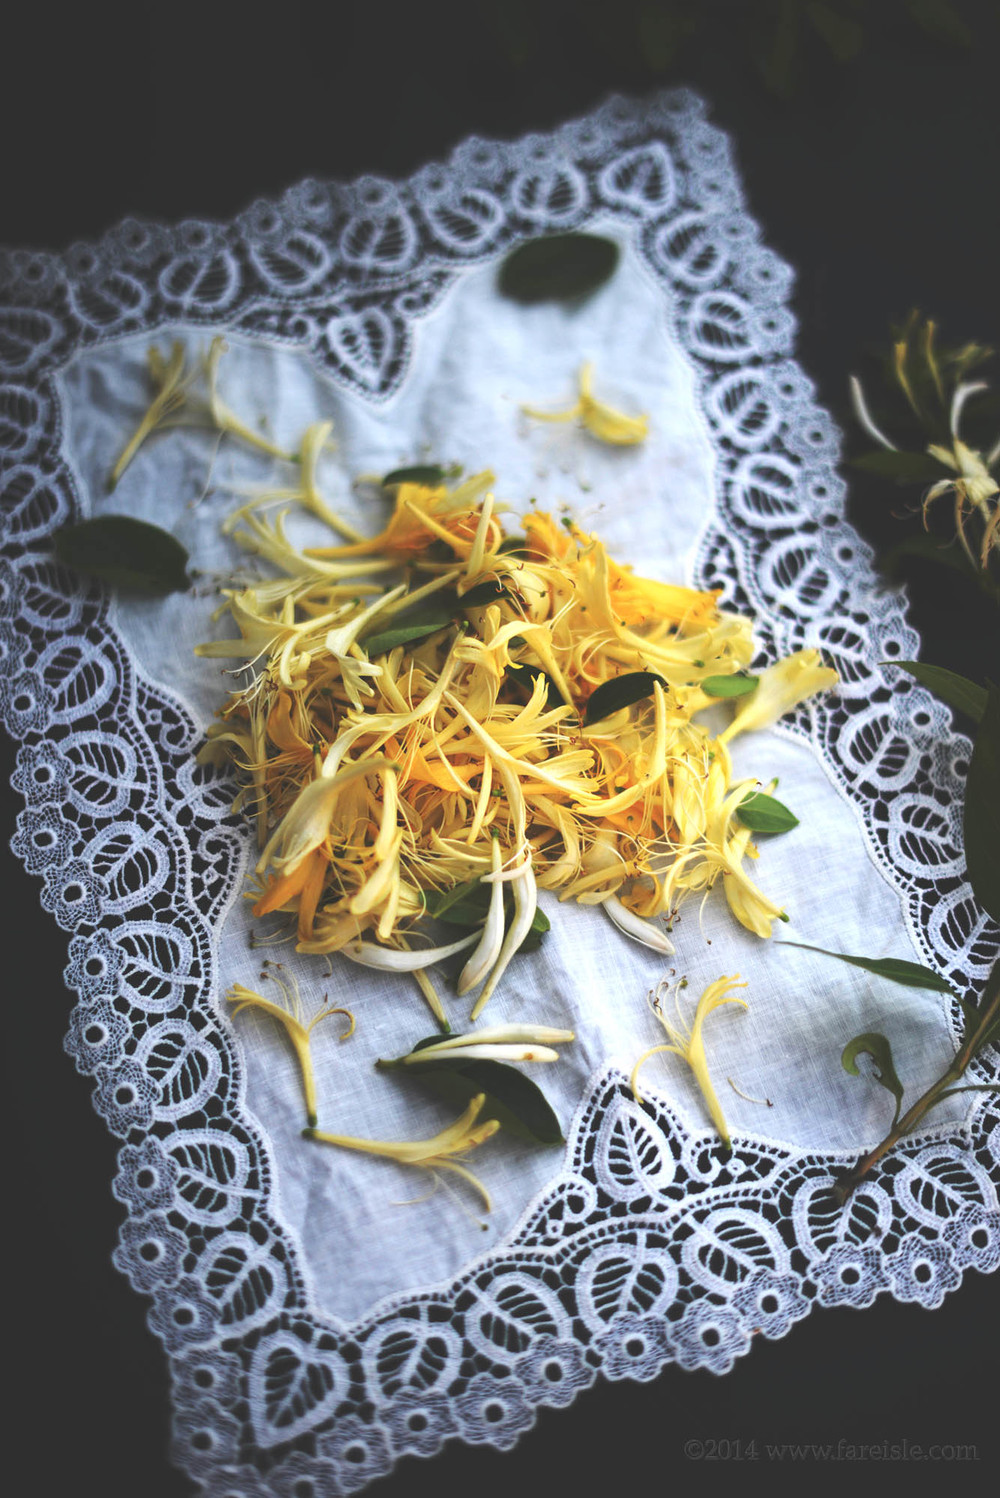 honeysuckle blossoms.jpg